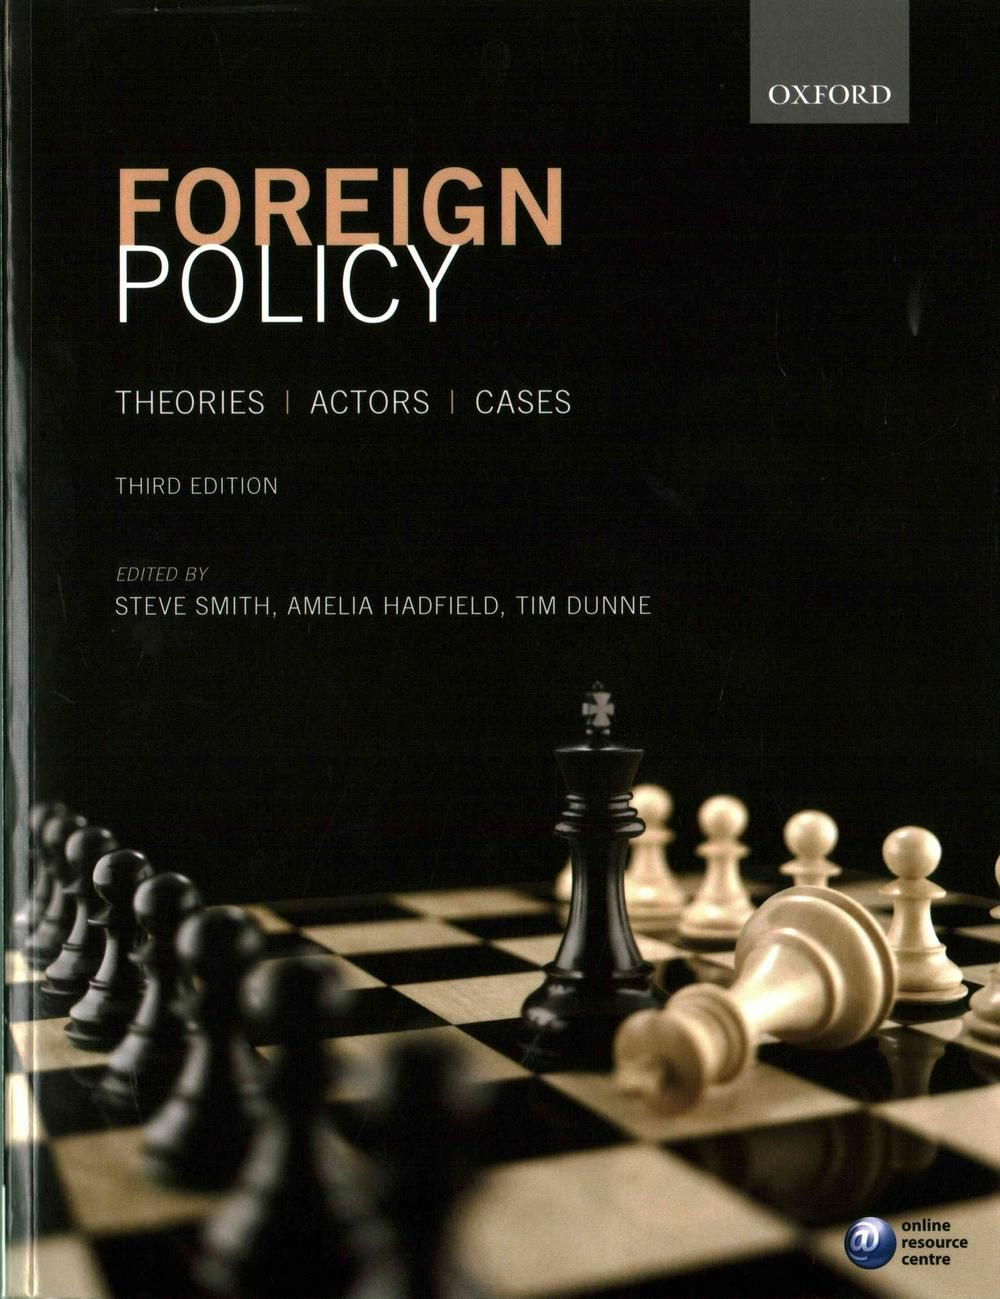 Foreign Policy: Theories, Actors, Cases (Third Edition)